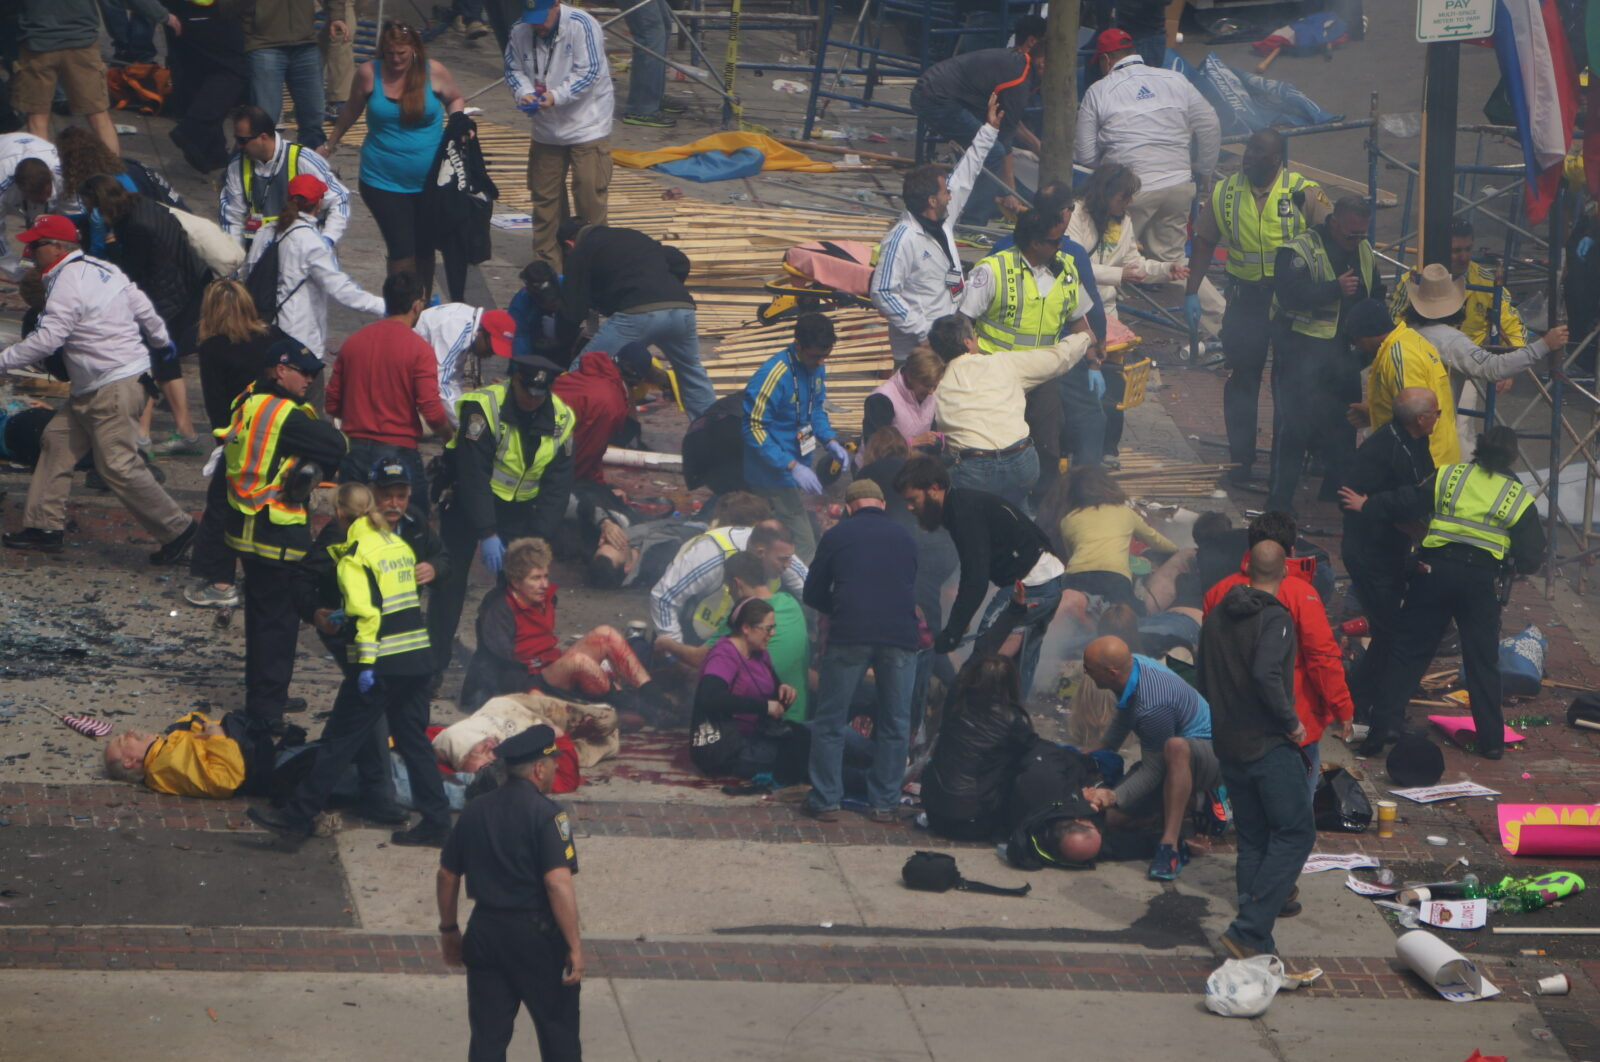 Boston_Marathon_explosions_8652877581